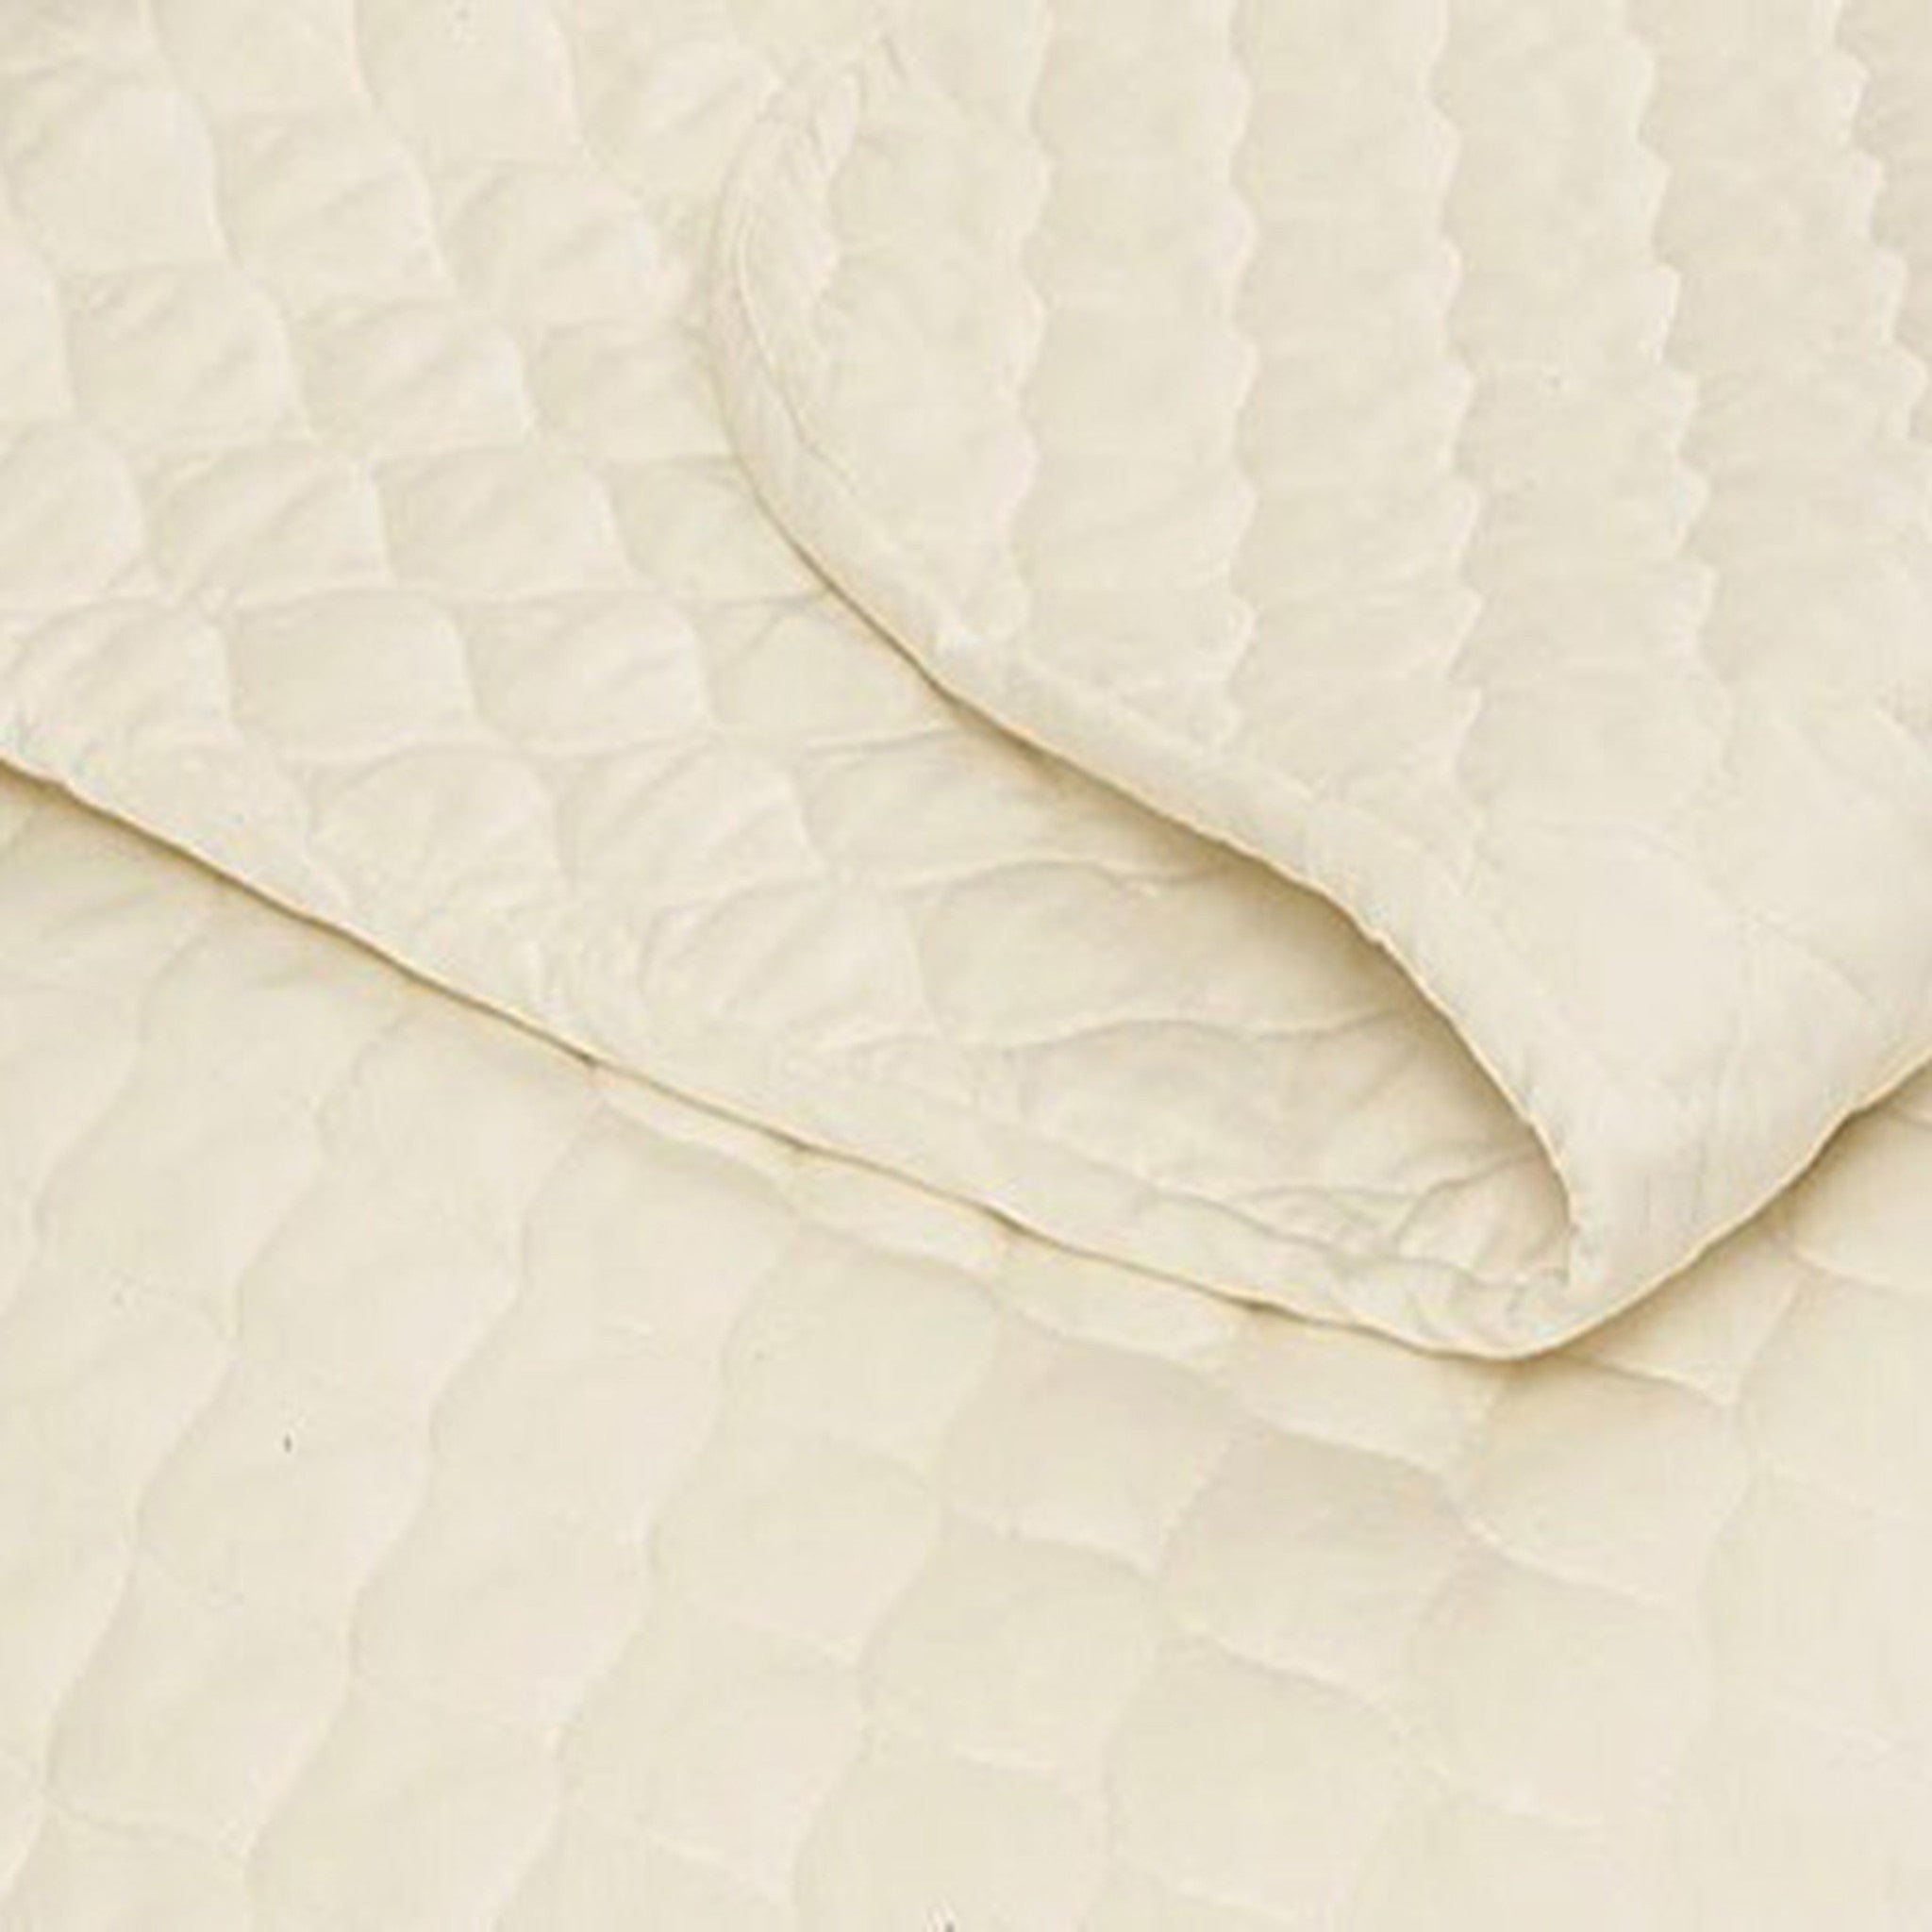 Certified Organic Cotton Mattress Pad Myorganicsleep